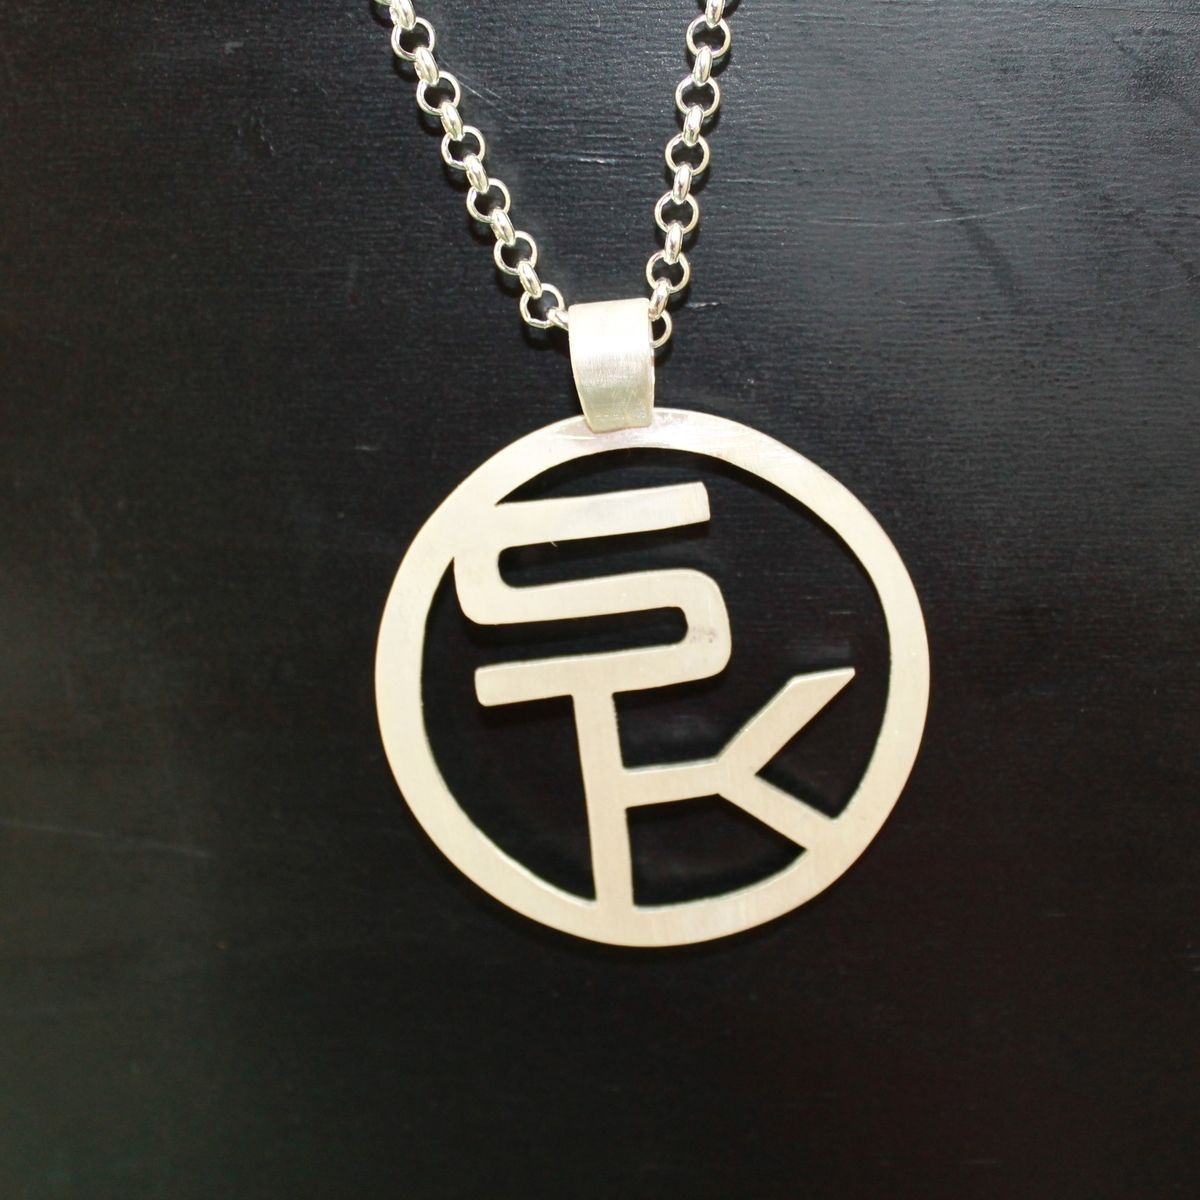 Hand Made Pendant With Sk Letters By Lsf Design